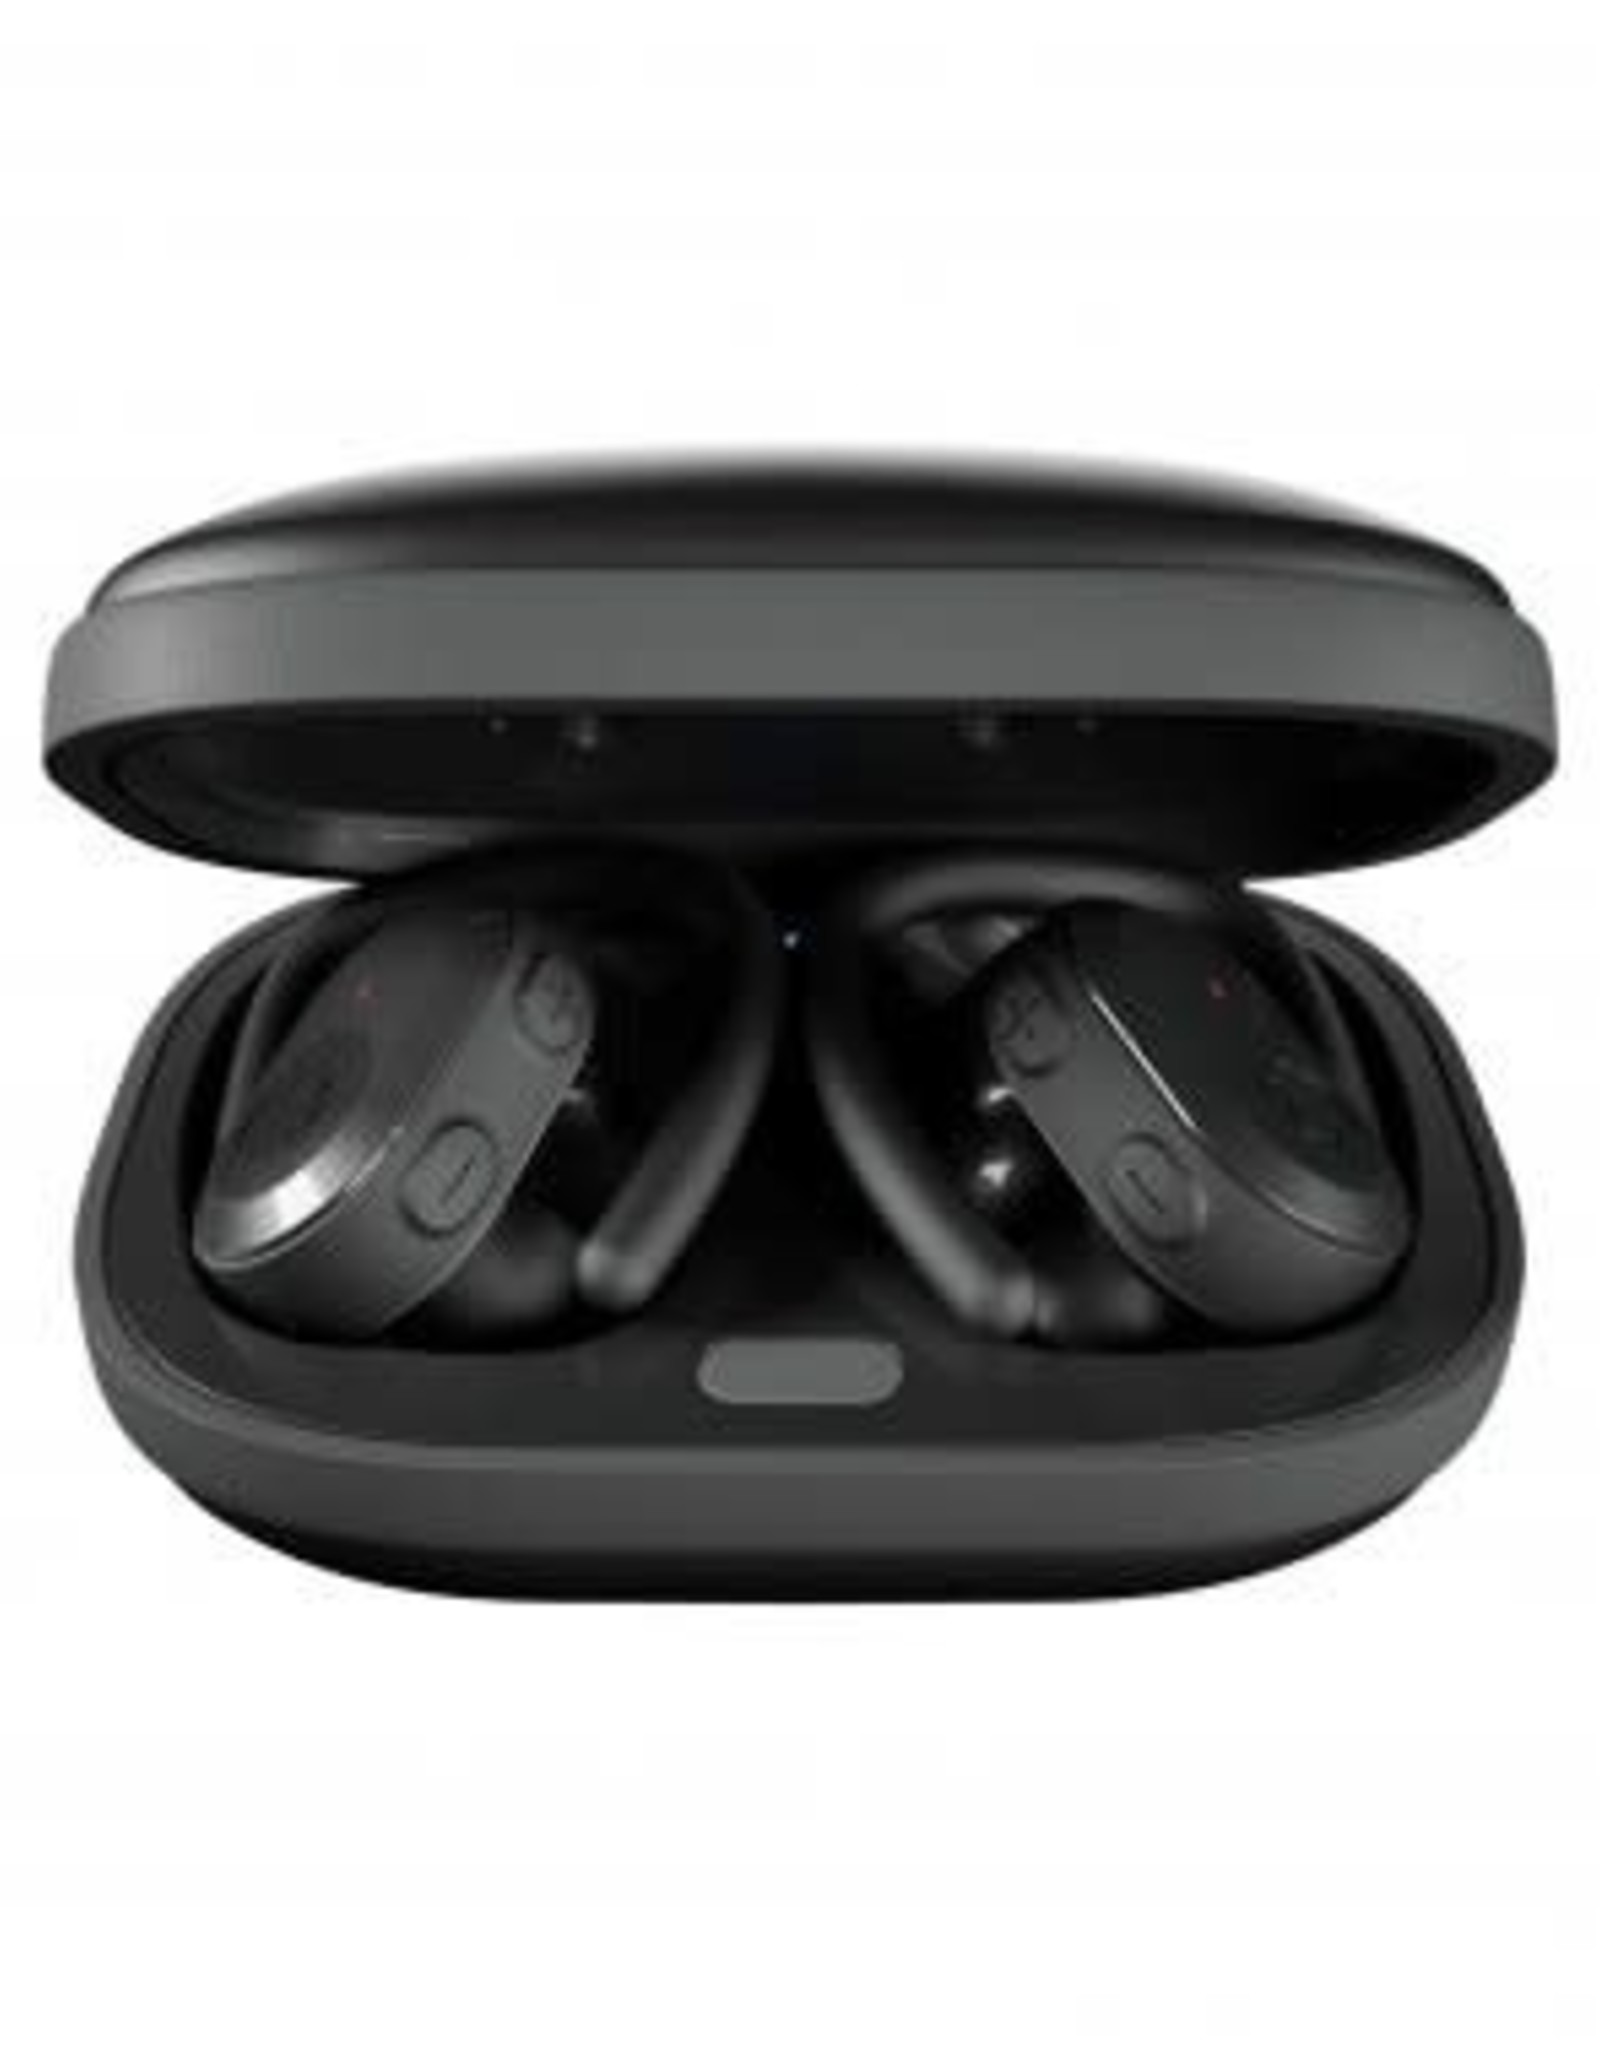 Skullcandy Push Ultra In-Ear Sound Isolating Truly Wireless Headphones - True Black S2BDW-N740